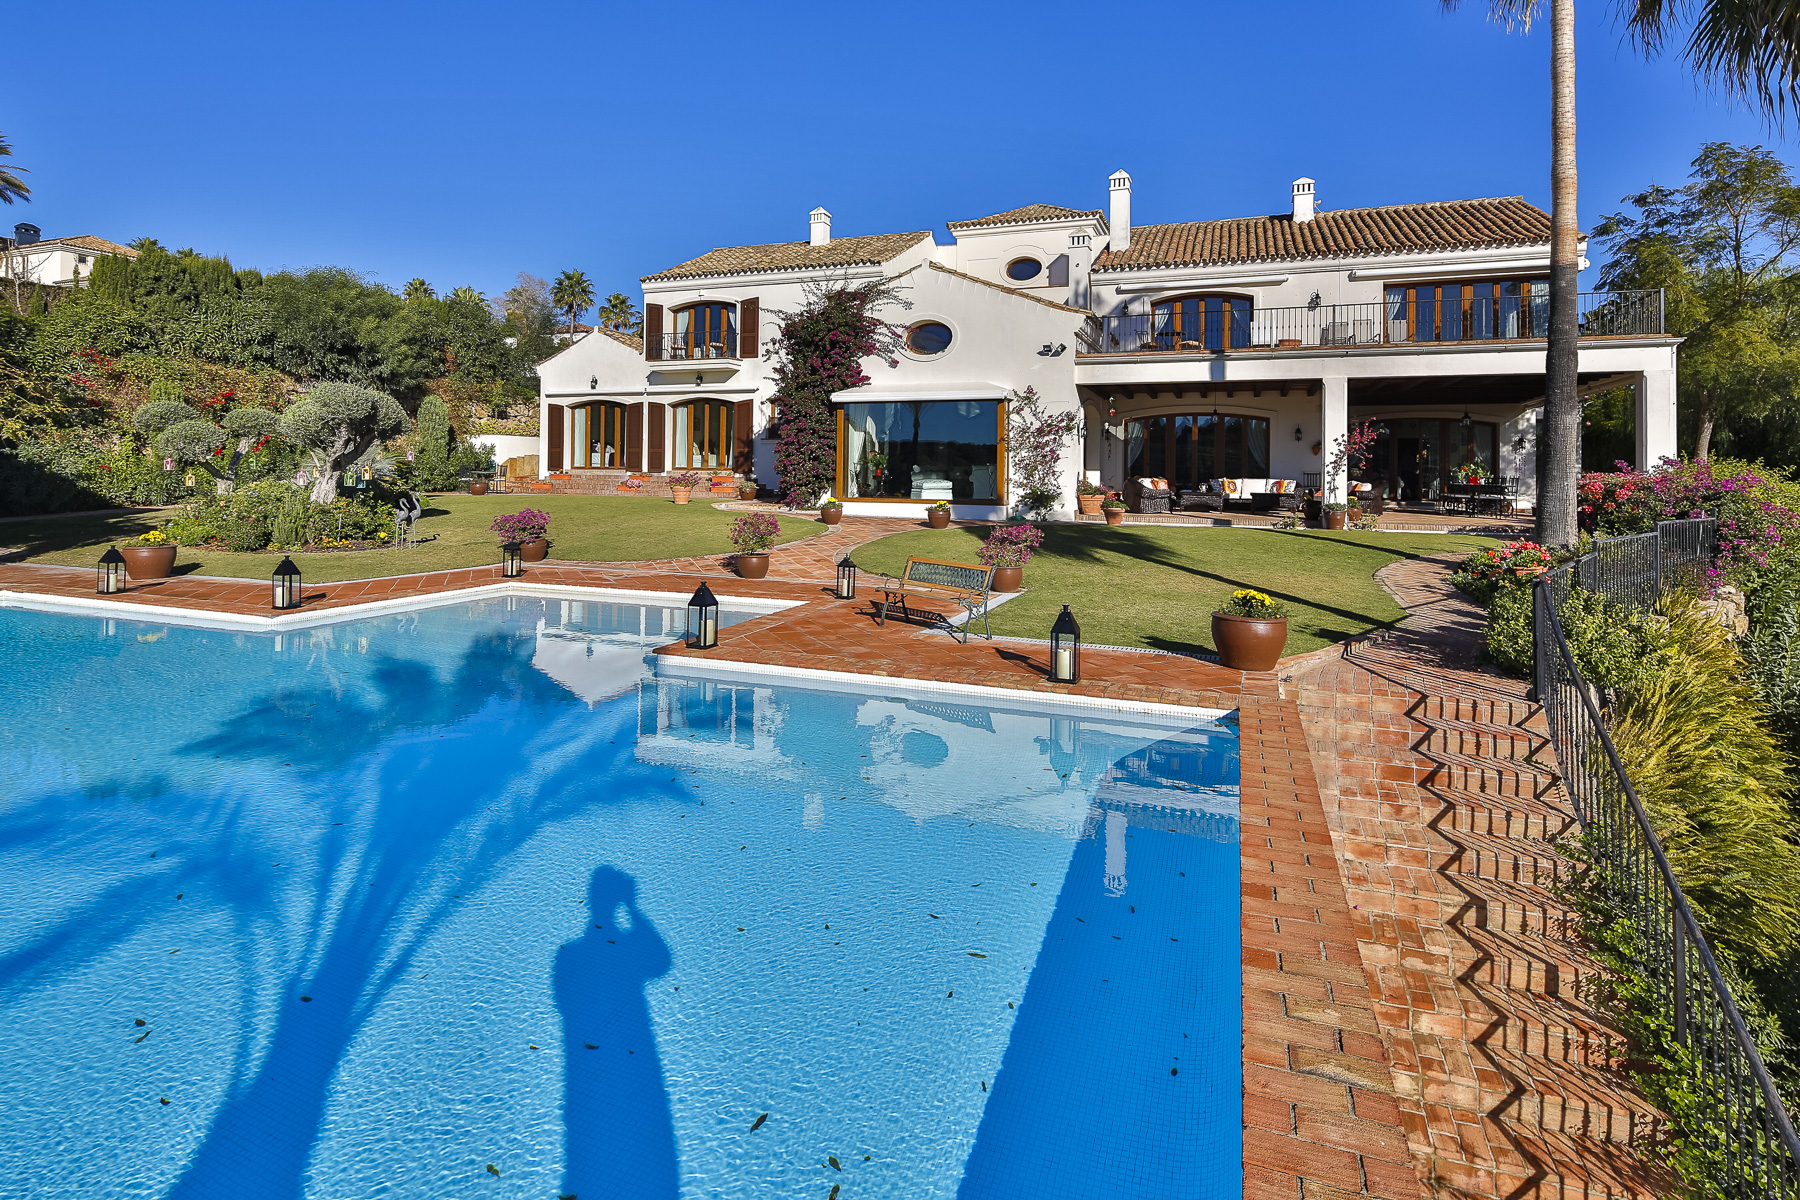 Einfamilienhaus für Verkauf beim Luxurious Andalusian style villa of 1,032 sq. m built on two plots of 6000 sq. m Sotogrande Alto, San Roque, Andalucia, 11310 Spanien